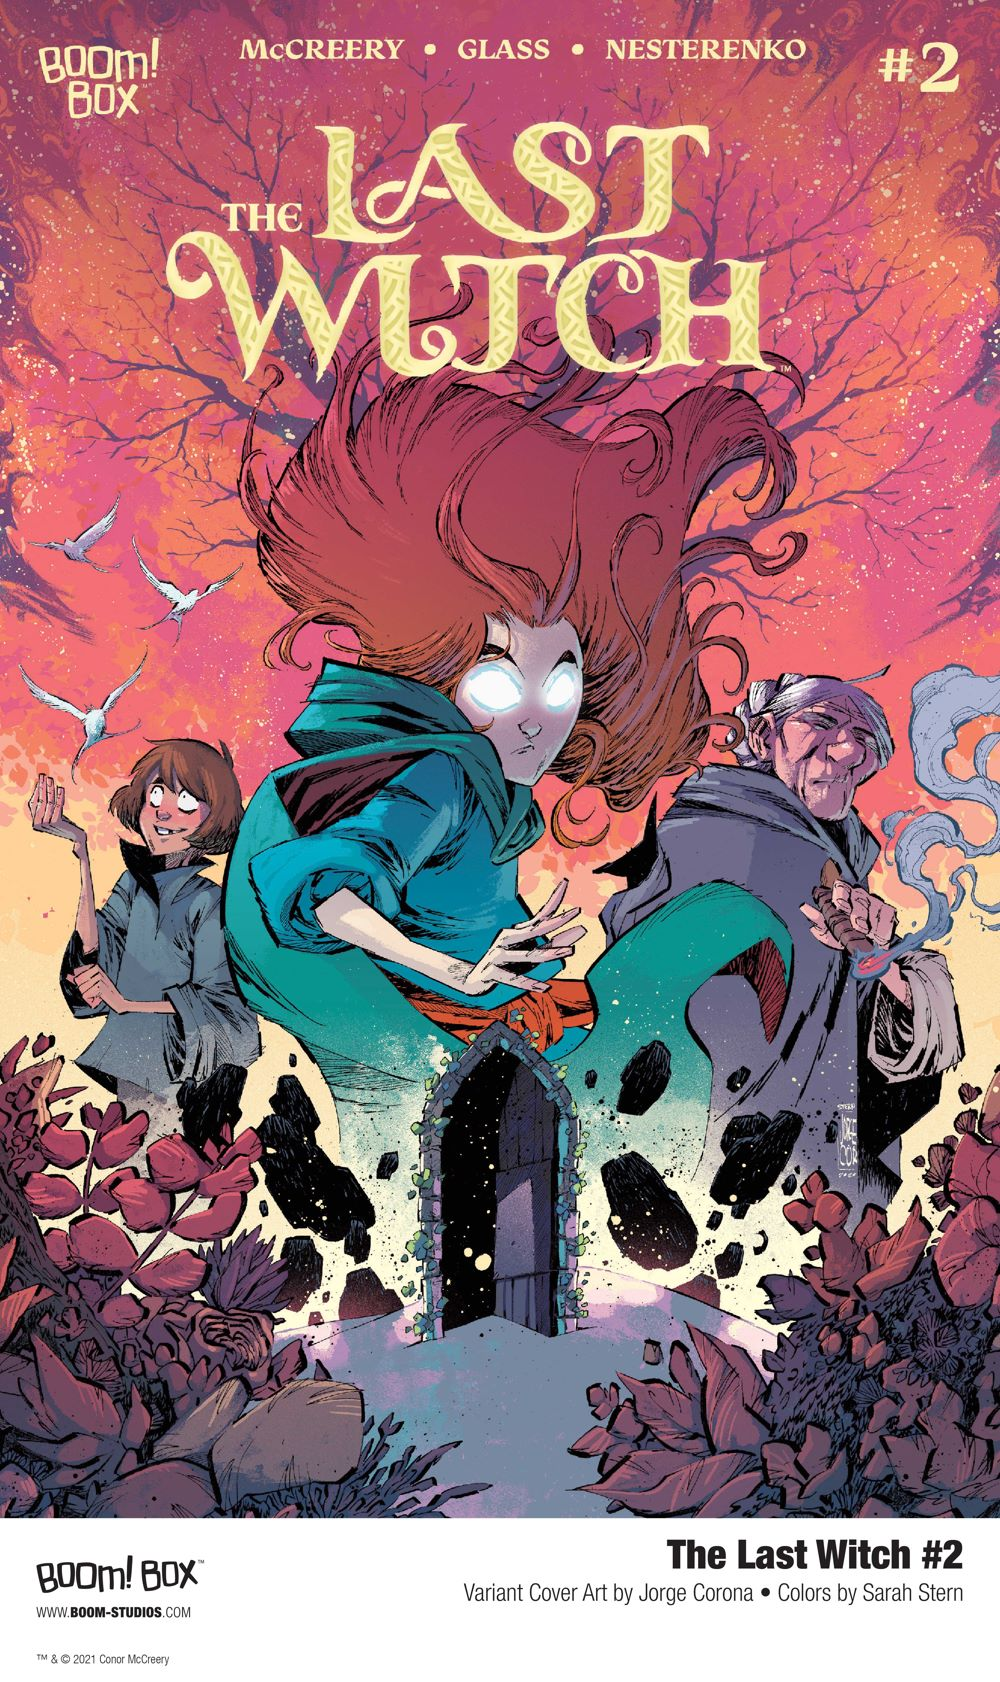 LastWitch_002_Cover_Variant_PROMO First Look at BOOM! Studios' THE LAST WITCH #2